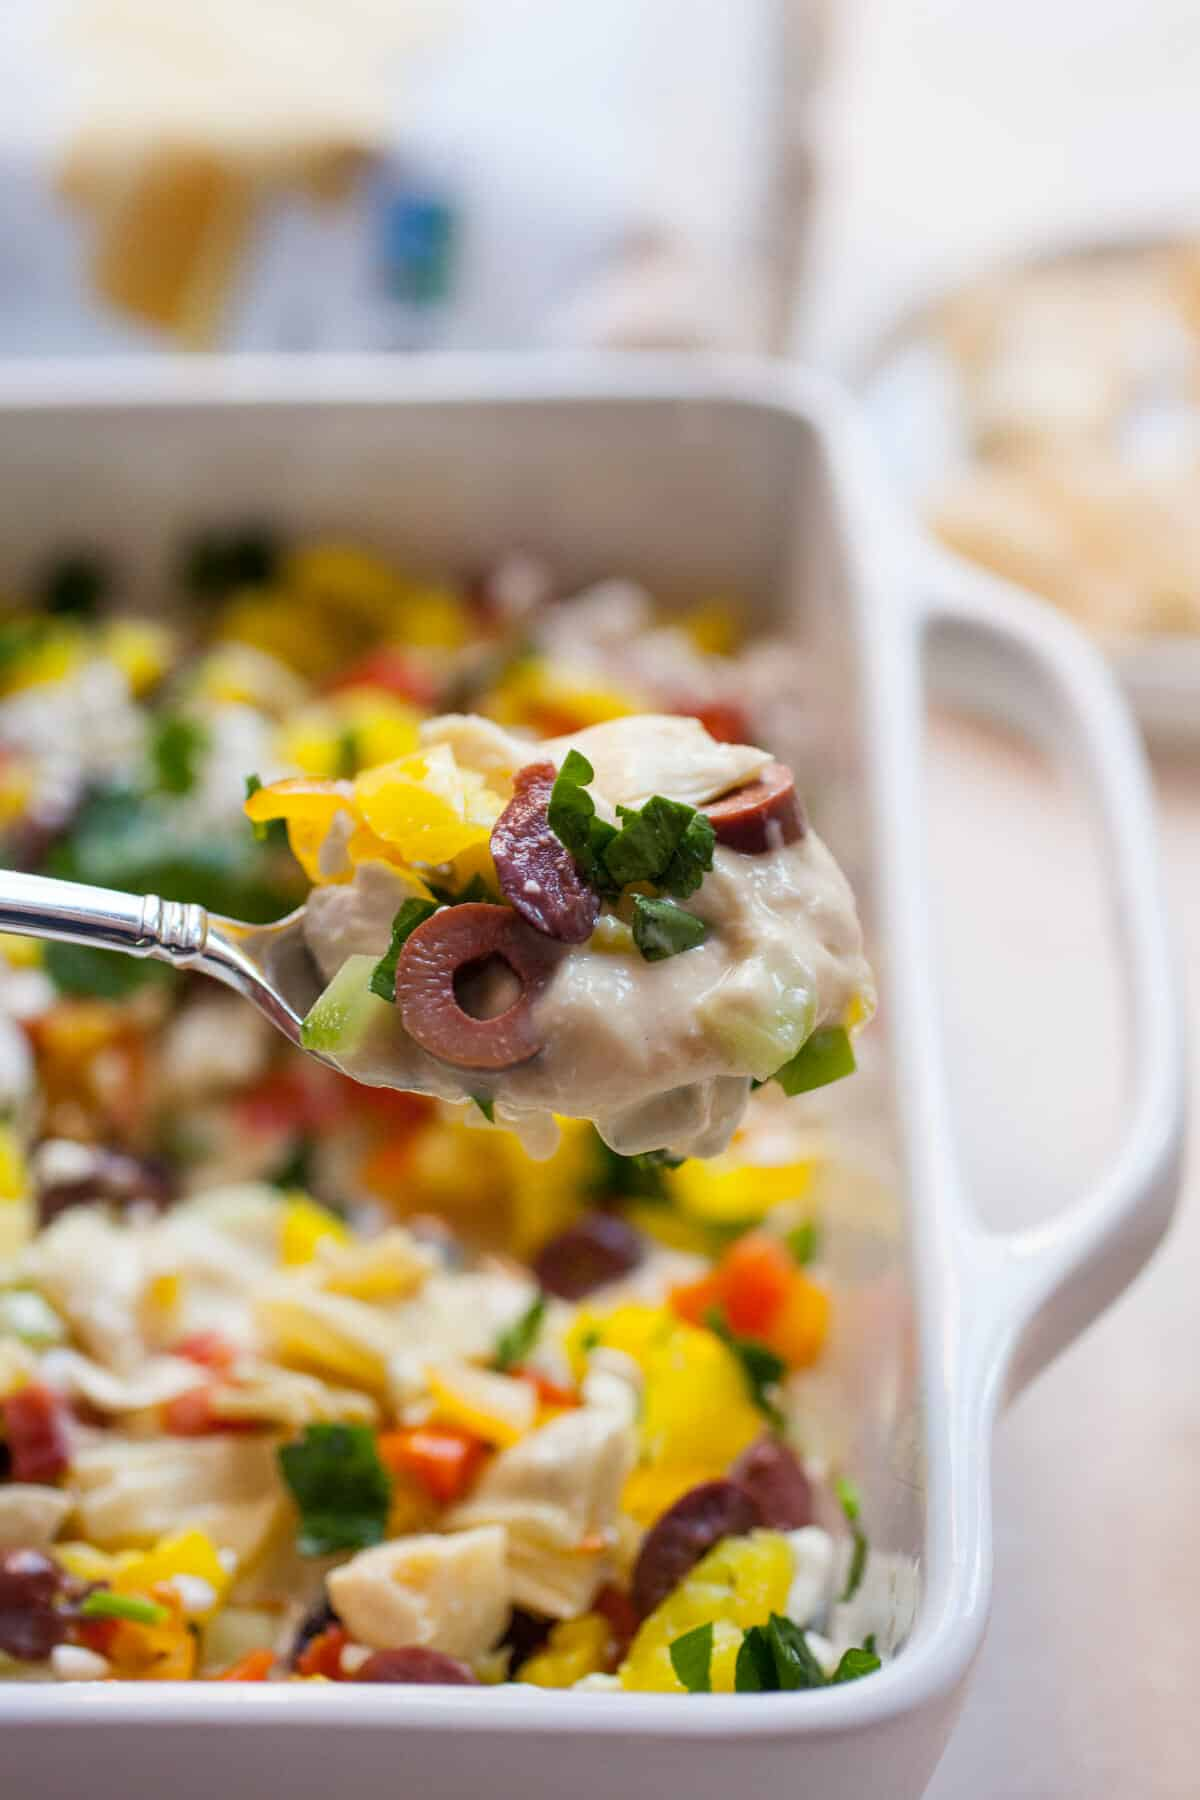 10 Layer Greek Dip: A quick dip that has beautiful colors and flavors. Perfect for a party! | macheesmo.com